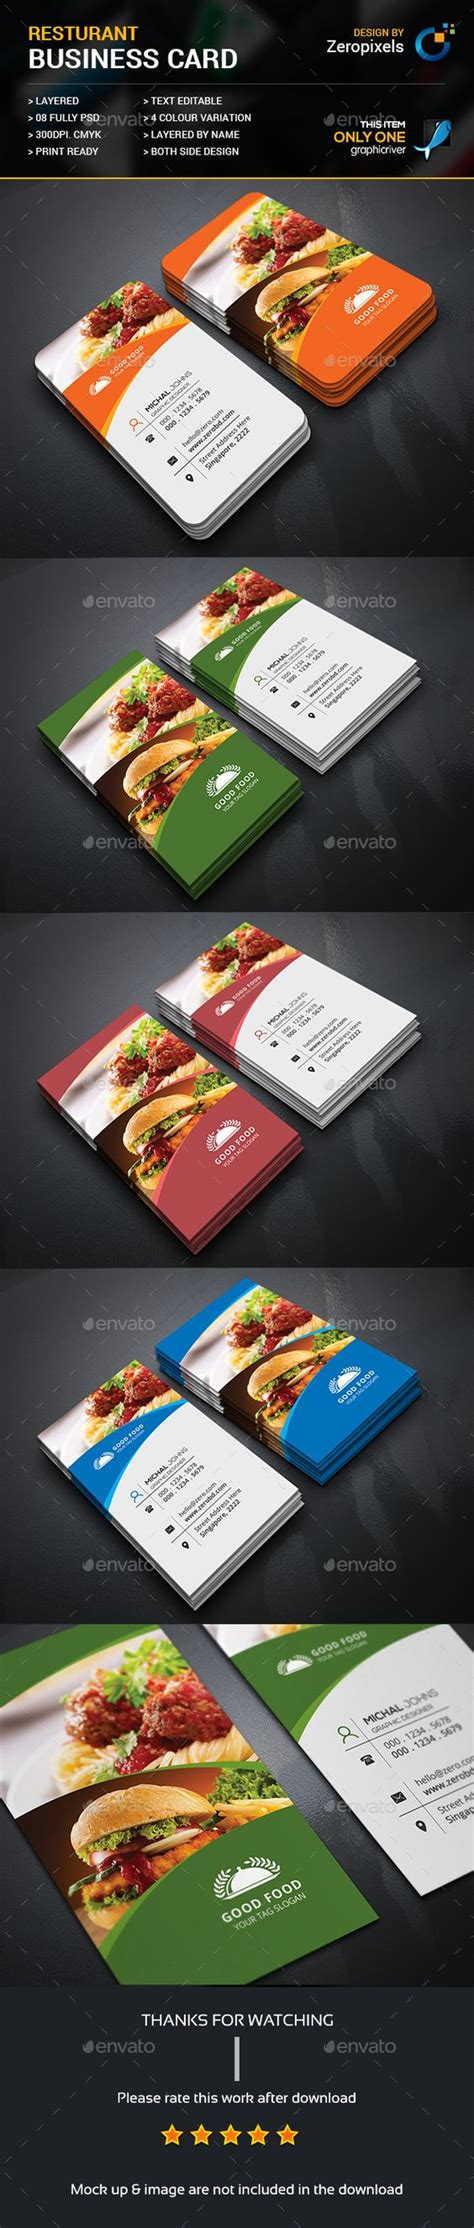 Restaurant Business Card Psd Template by Restaurant Business Card Template Psd Here